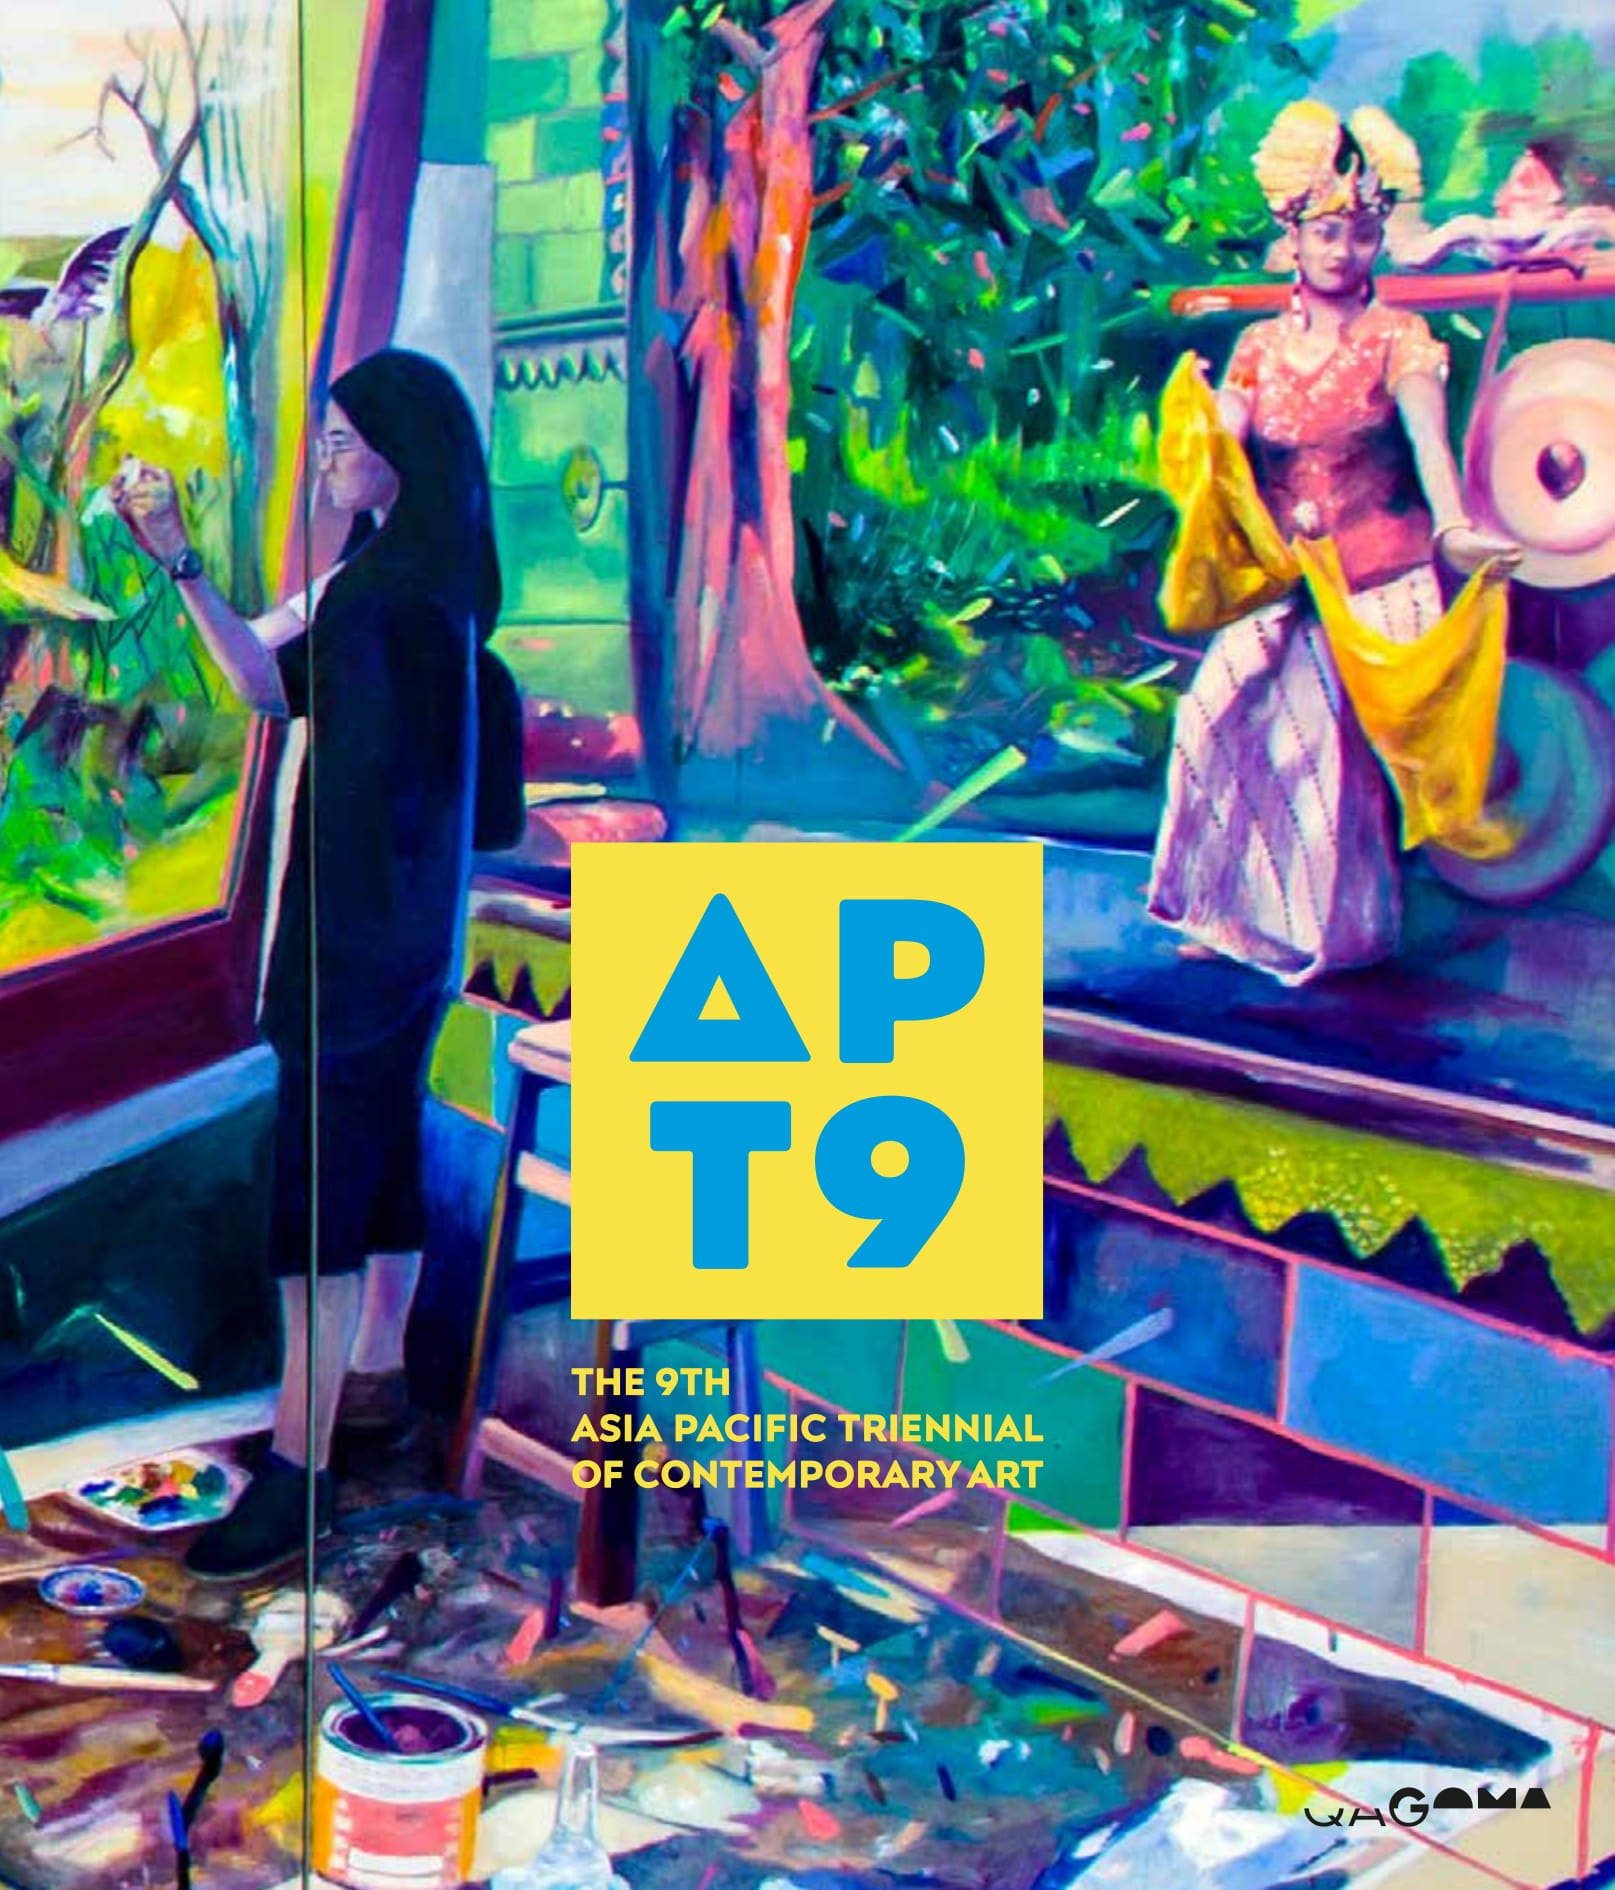 9th Asia Pacific Triennial of Contemporary Art